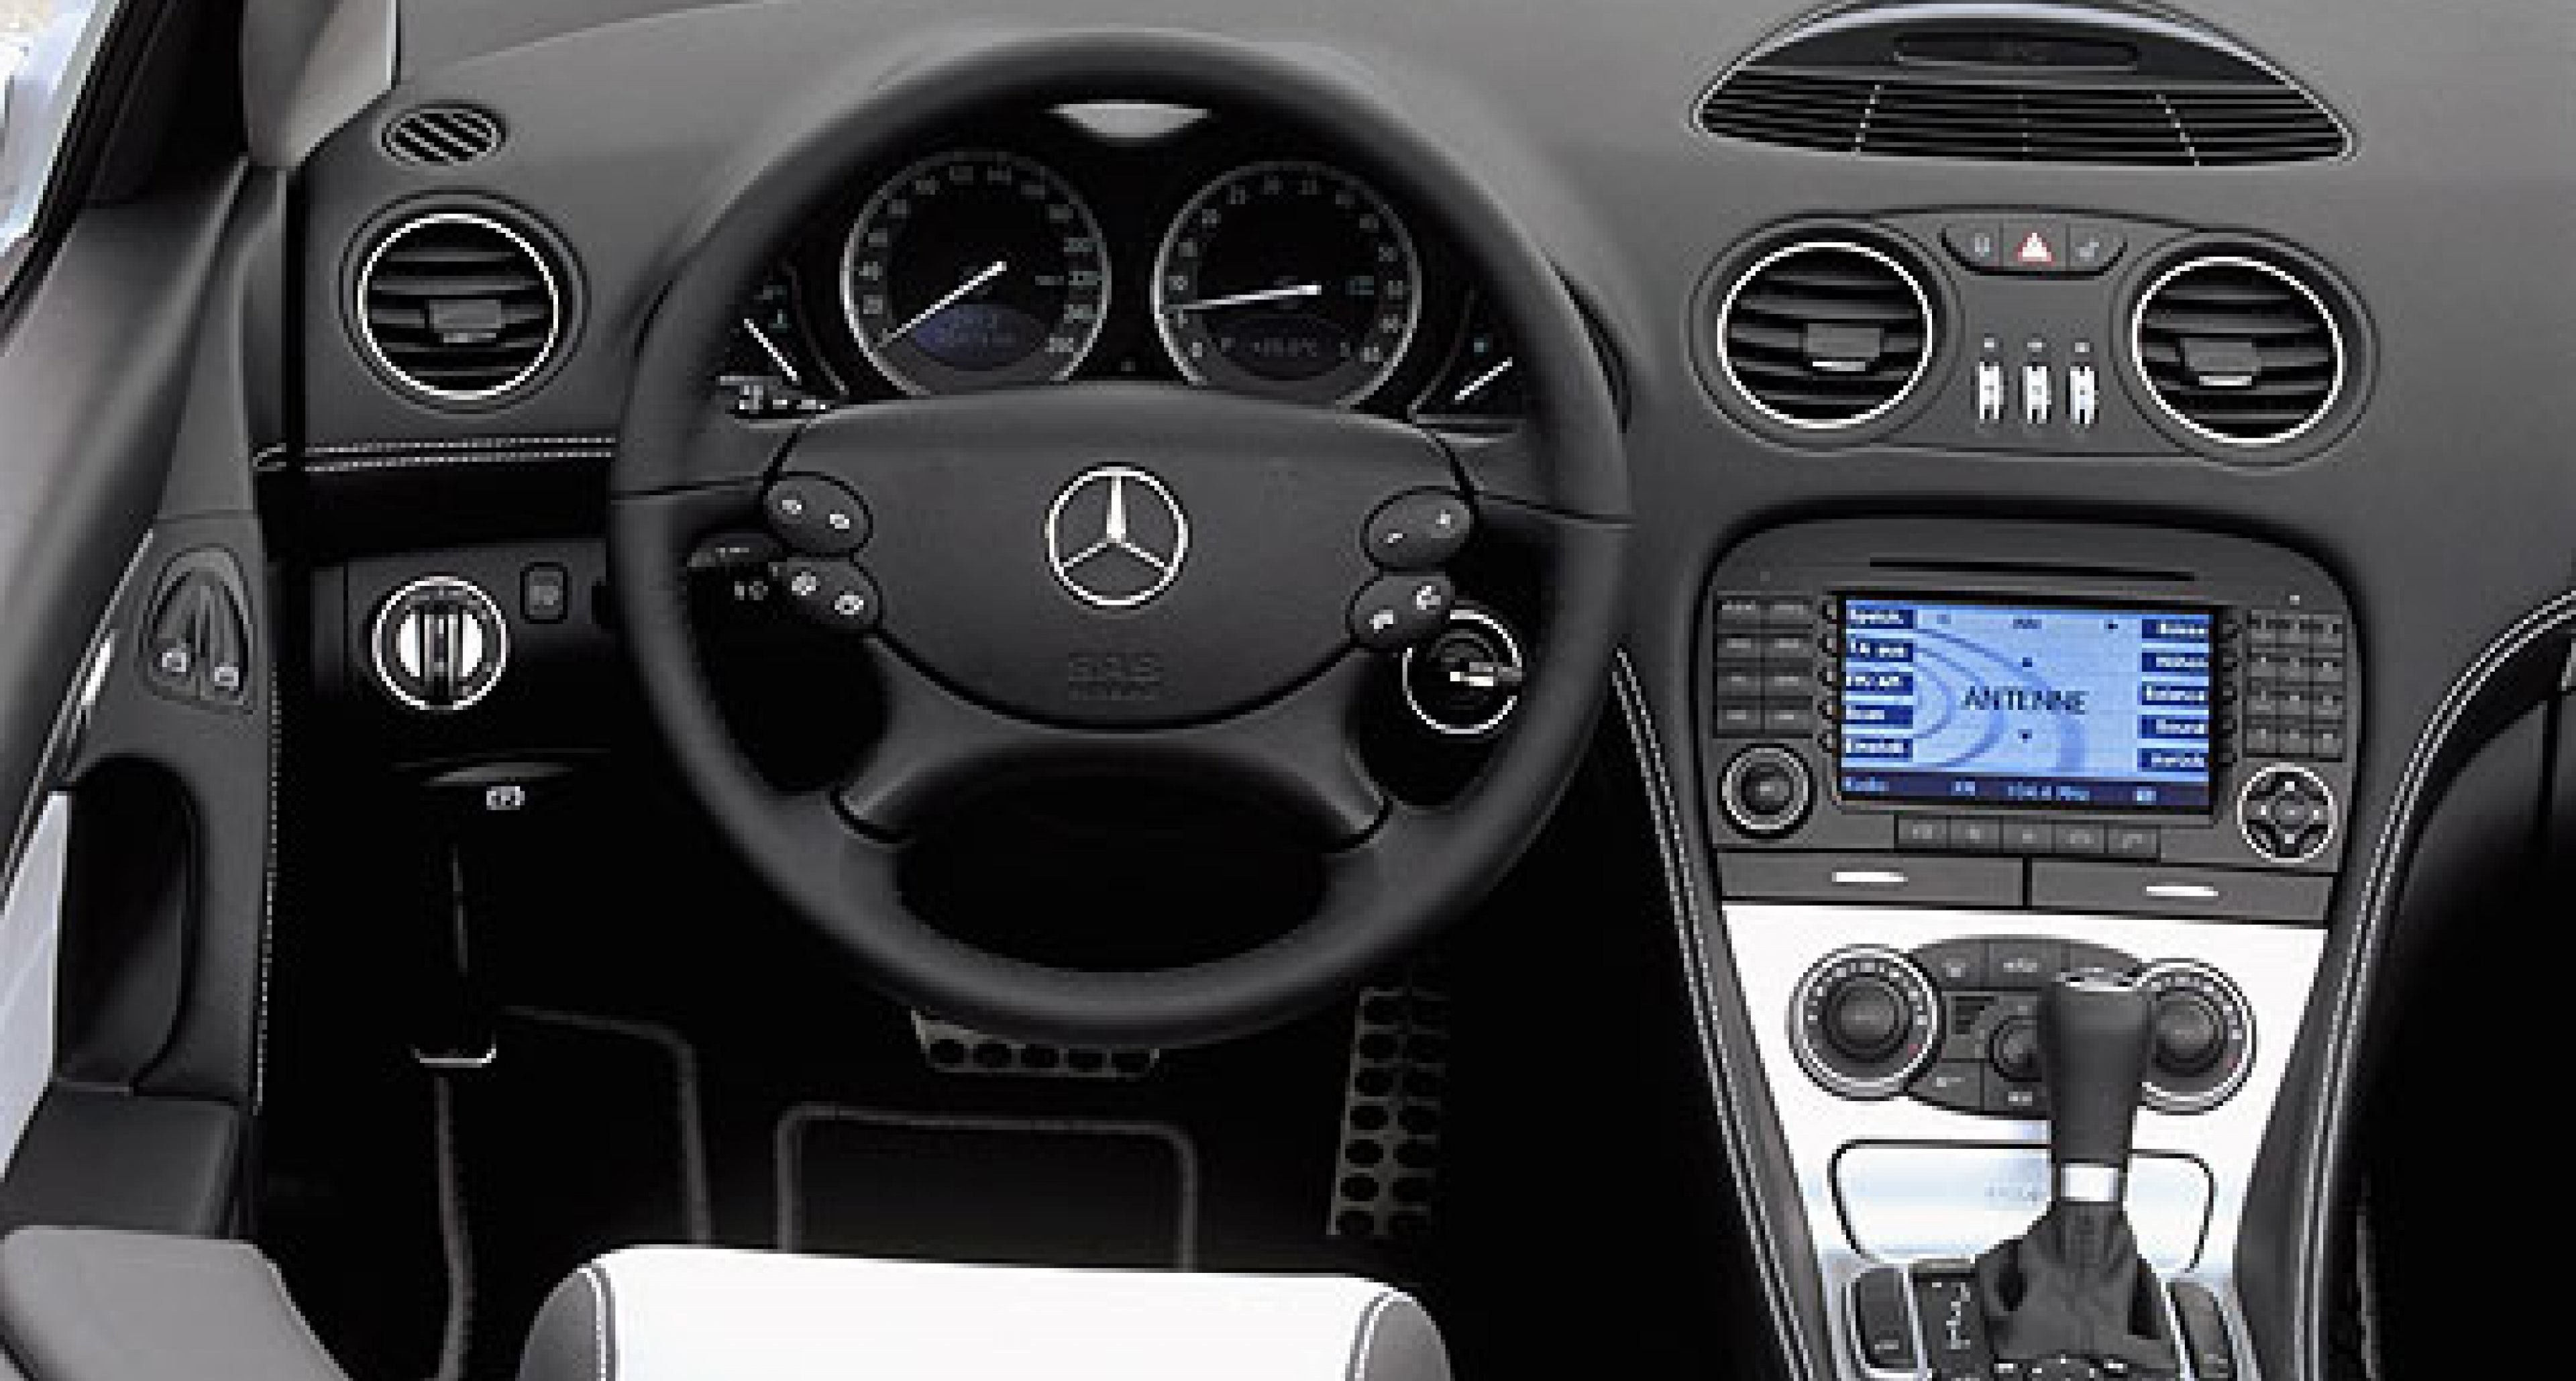 50th anniversary edition of the Mercedes-Benz SL